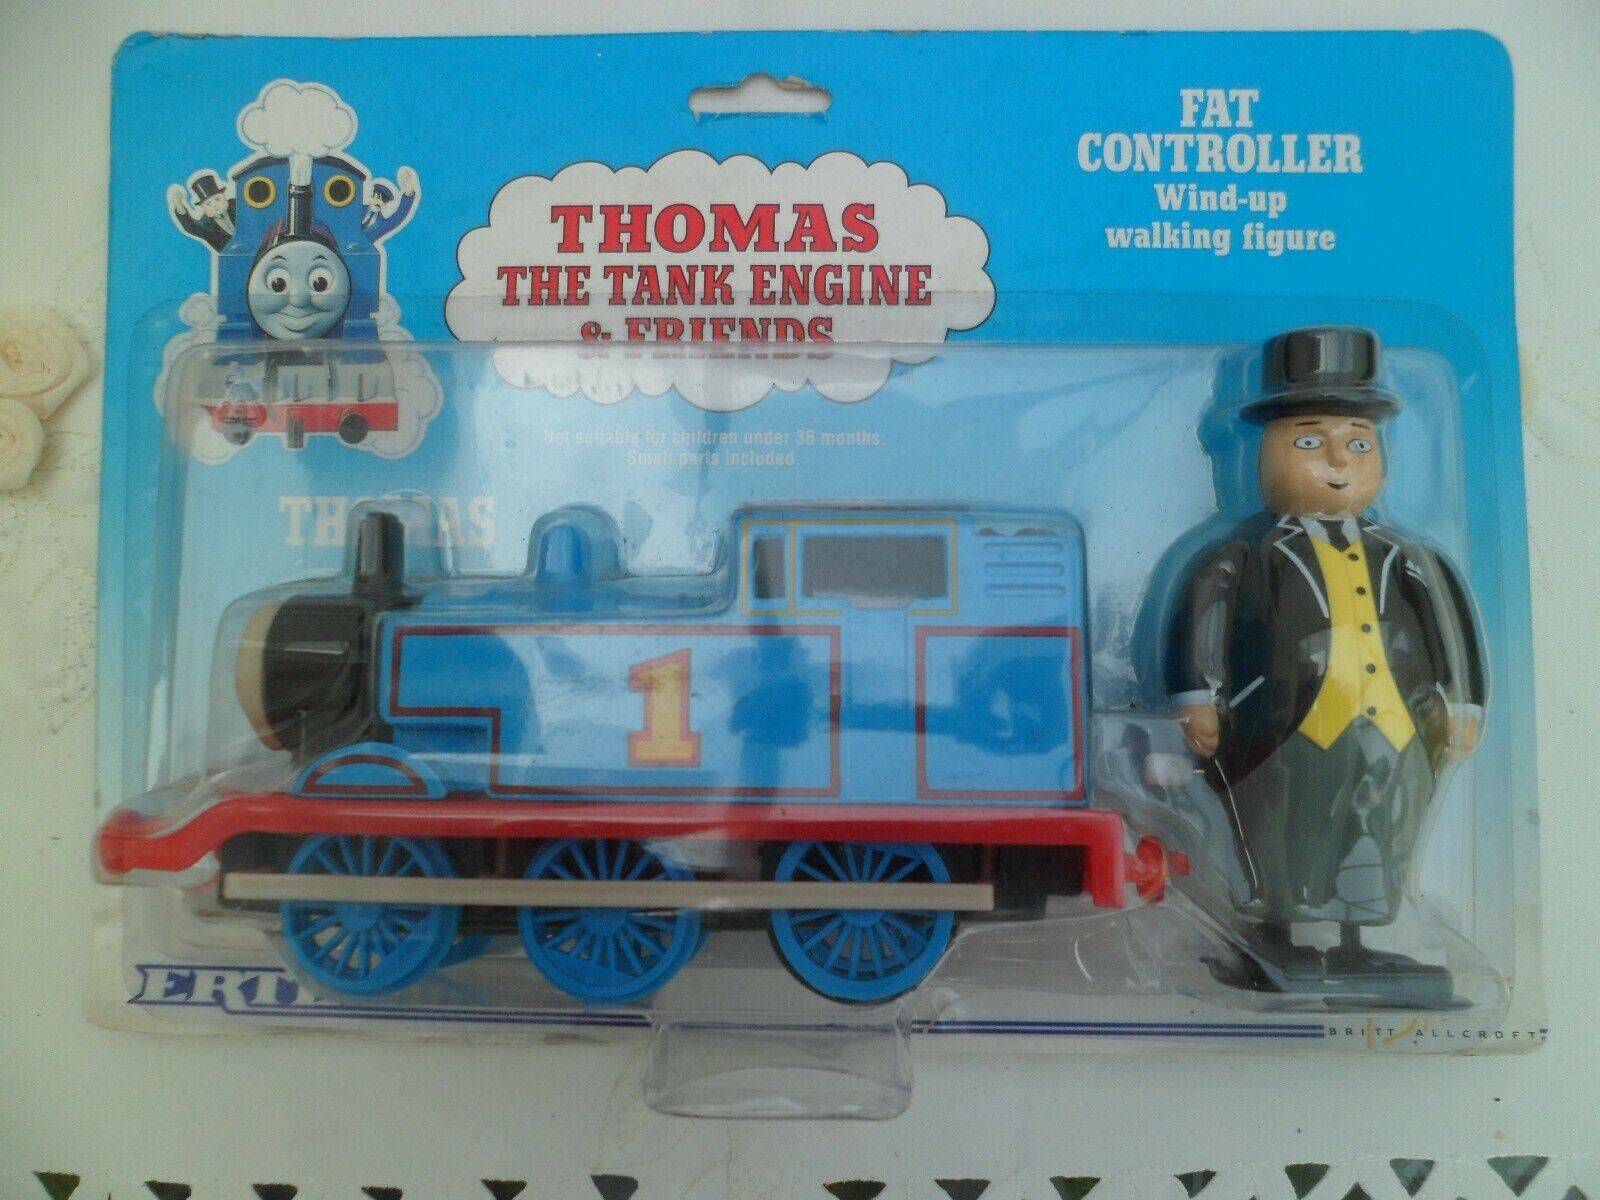 Vintage ERTL Thomas The Tank Engine & Fat Controller Wind-Up Walking Figure 1993